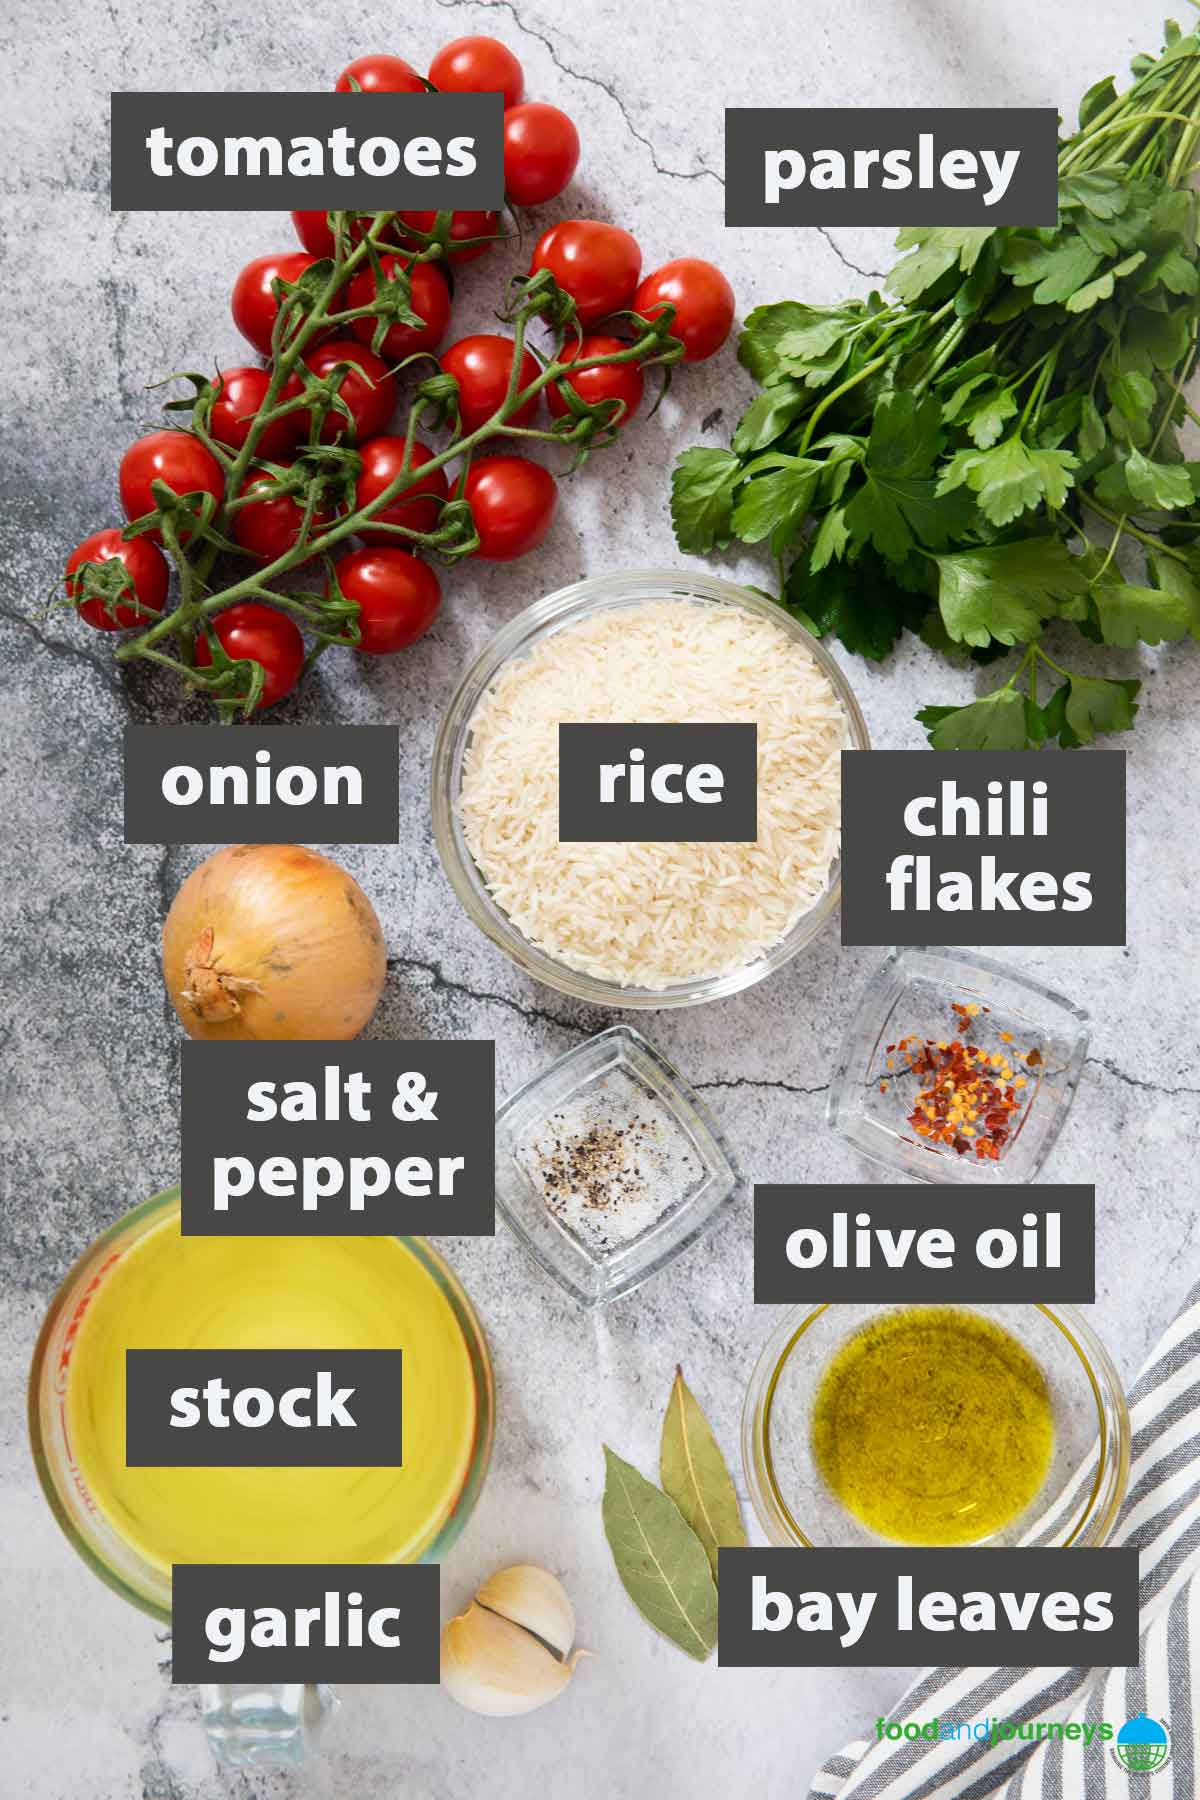 Jun2021, updated image showing the list of ingredients needed to make arroz de tomato at home.